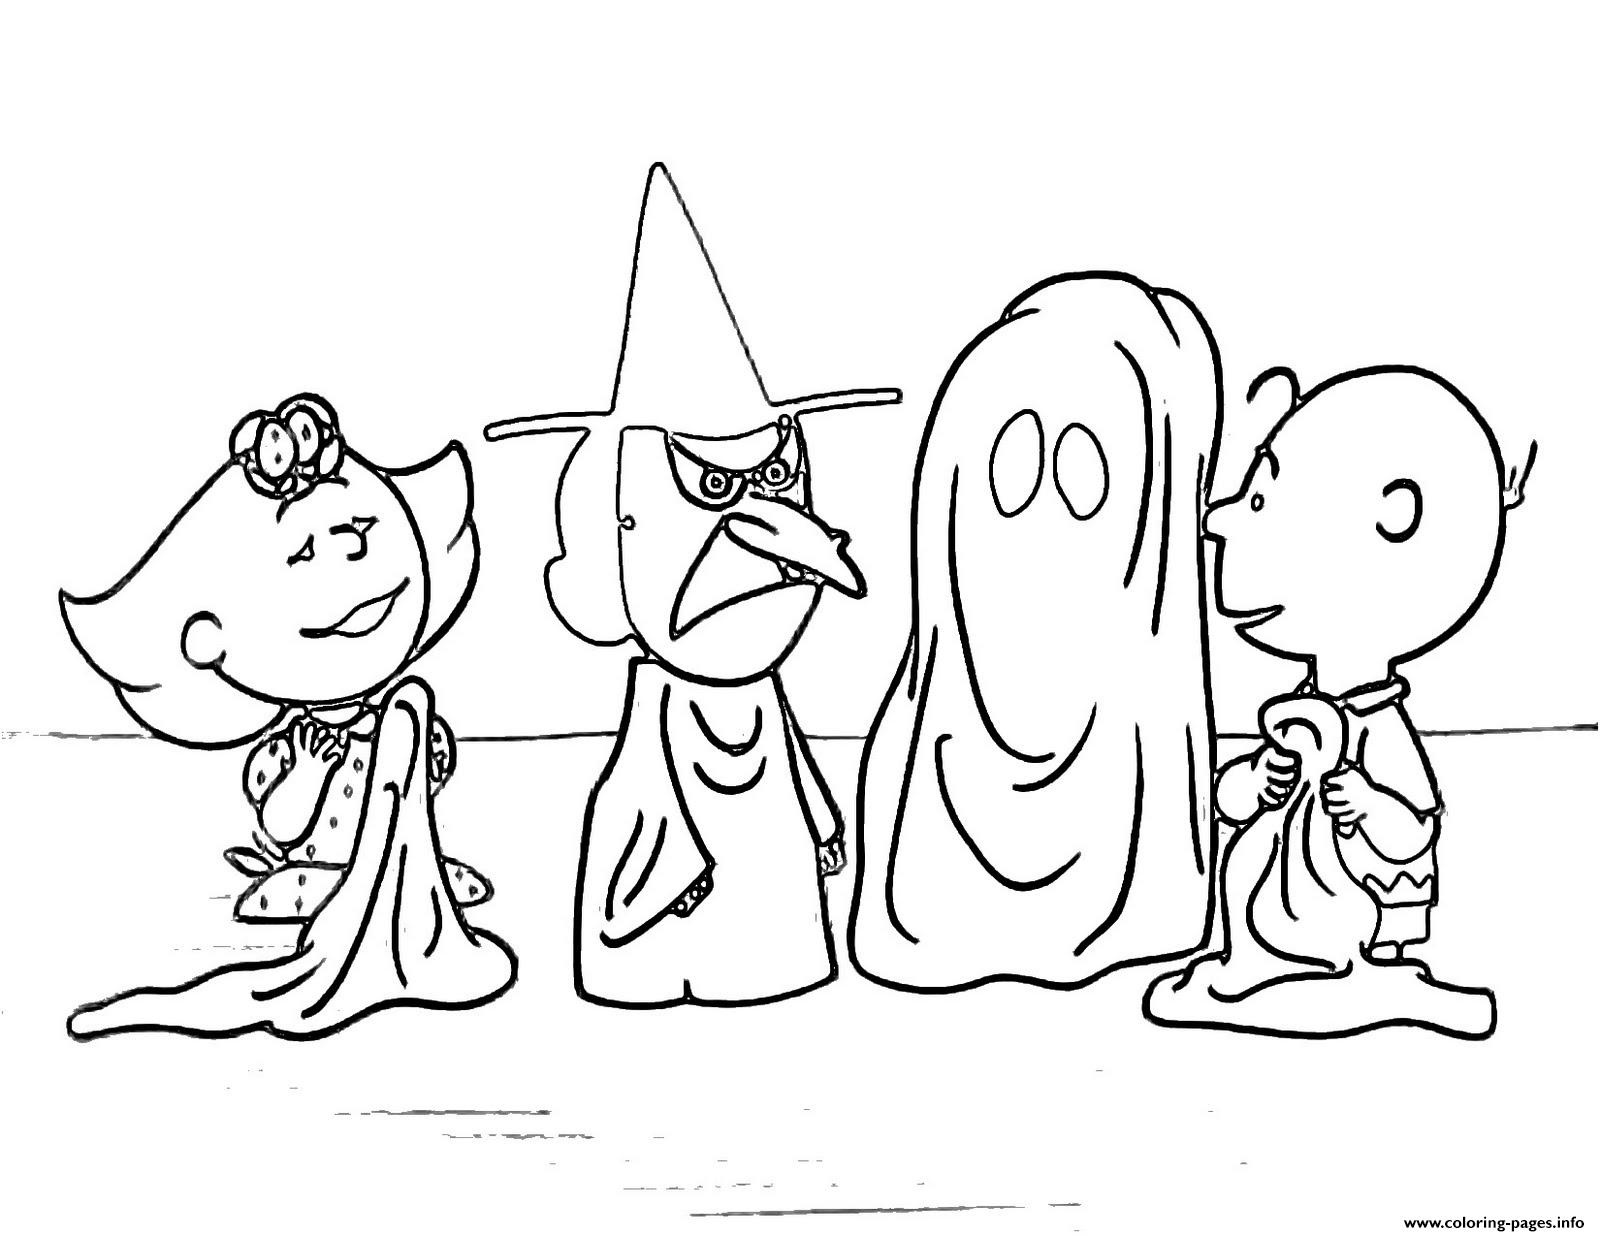 Charlie Brown Halloween S For Kidsc4D7 Coloring Pages Printable - Free Printable Charlie Brown Halloween Coloring Pages